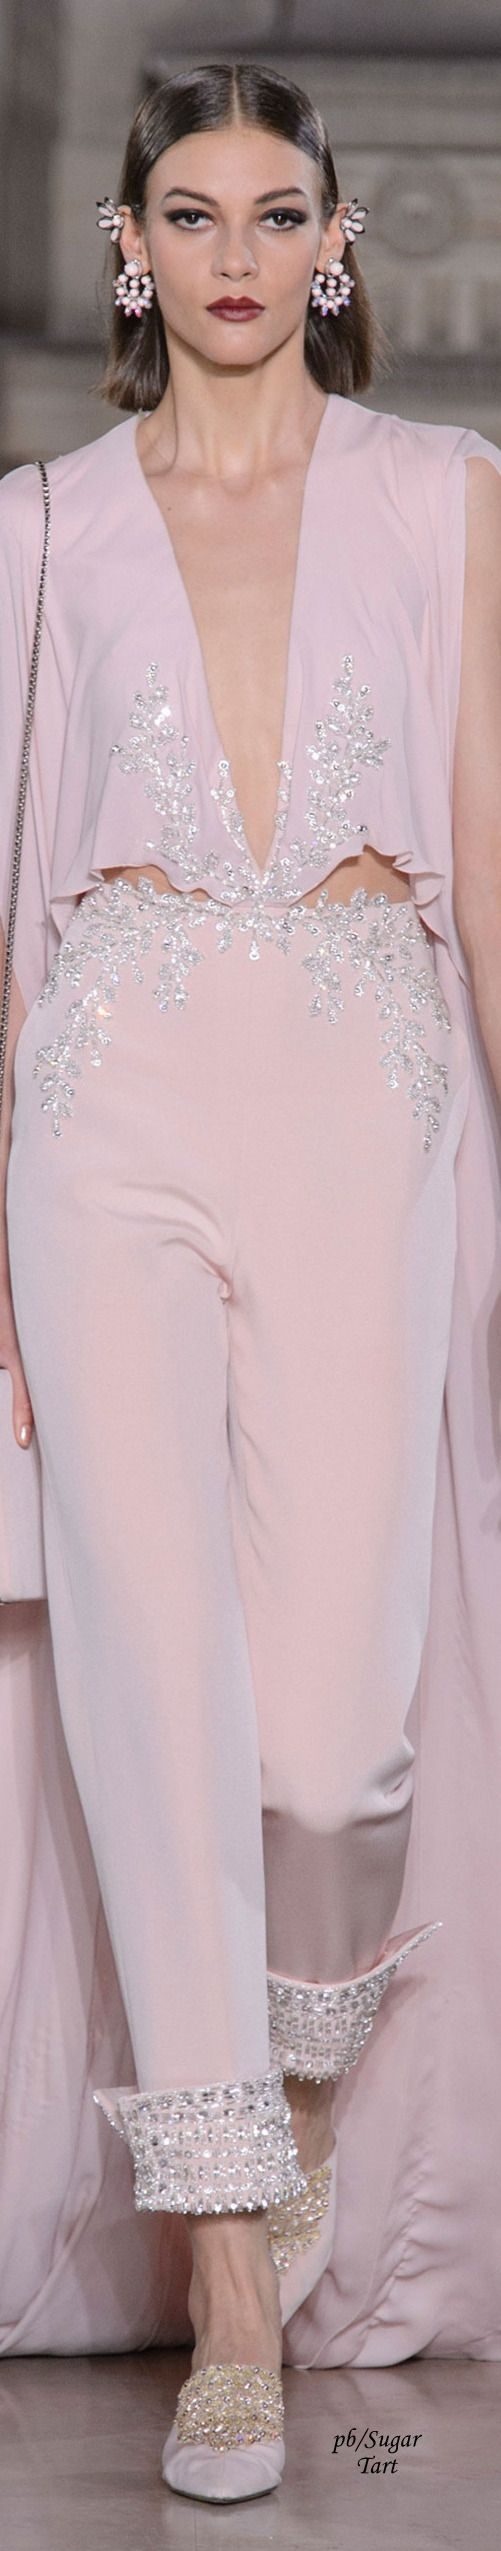 Georges hobeika fall couture diy clothes pinterest